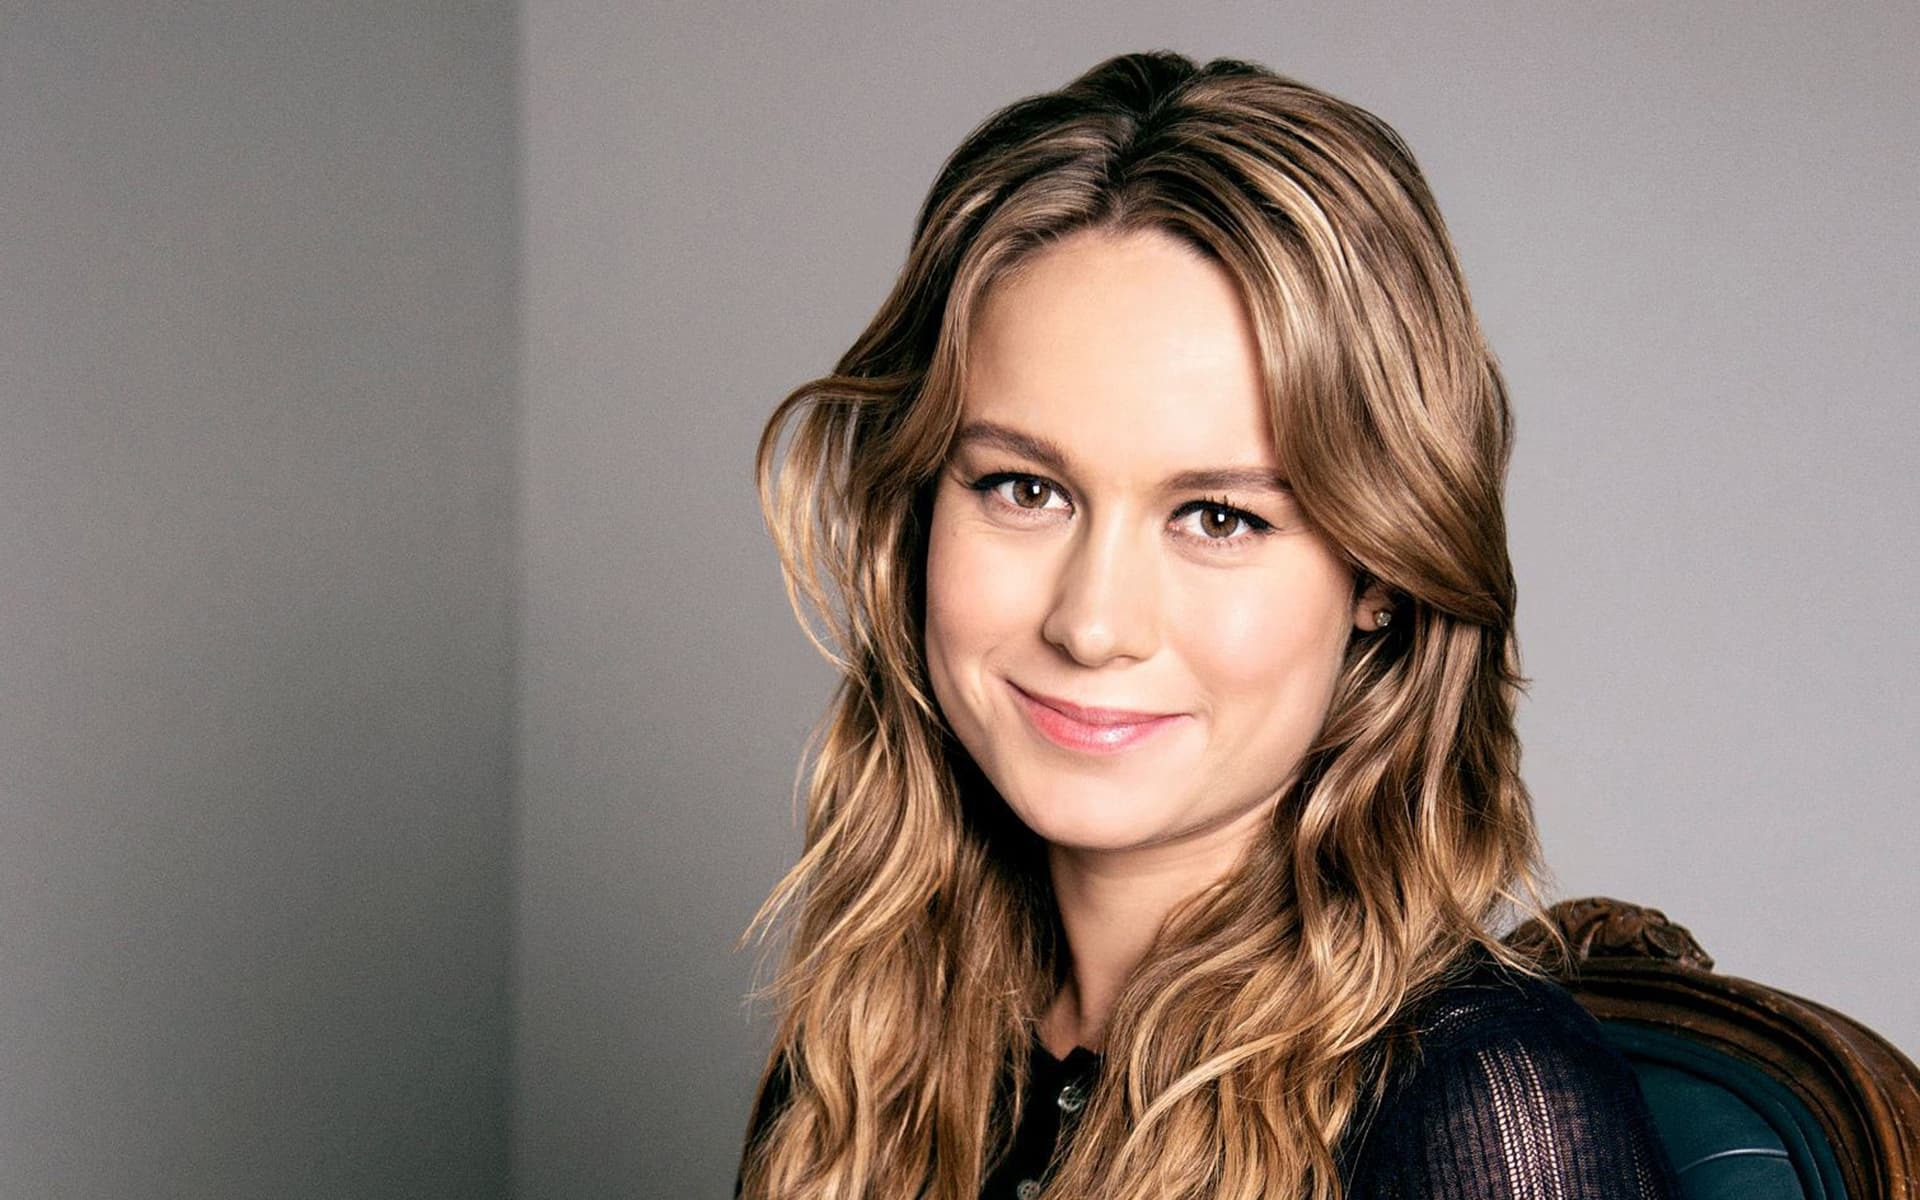 Desk For Computer Brie Larson Wallpapers Images Photos Pictures Backgrounds